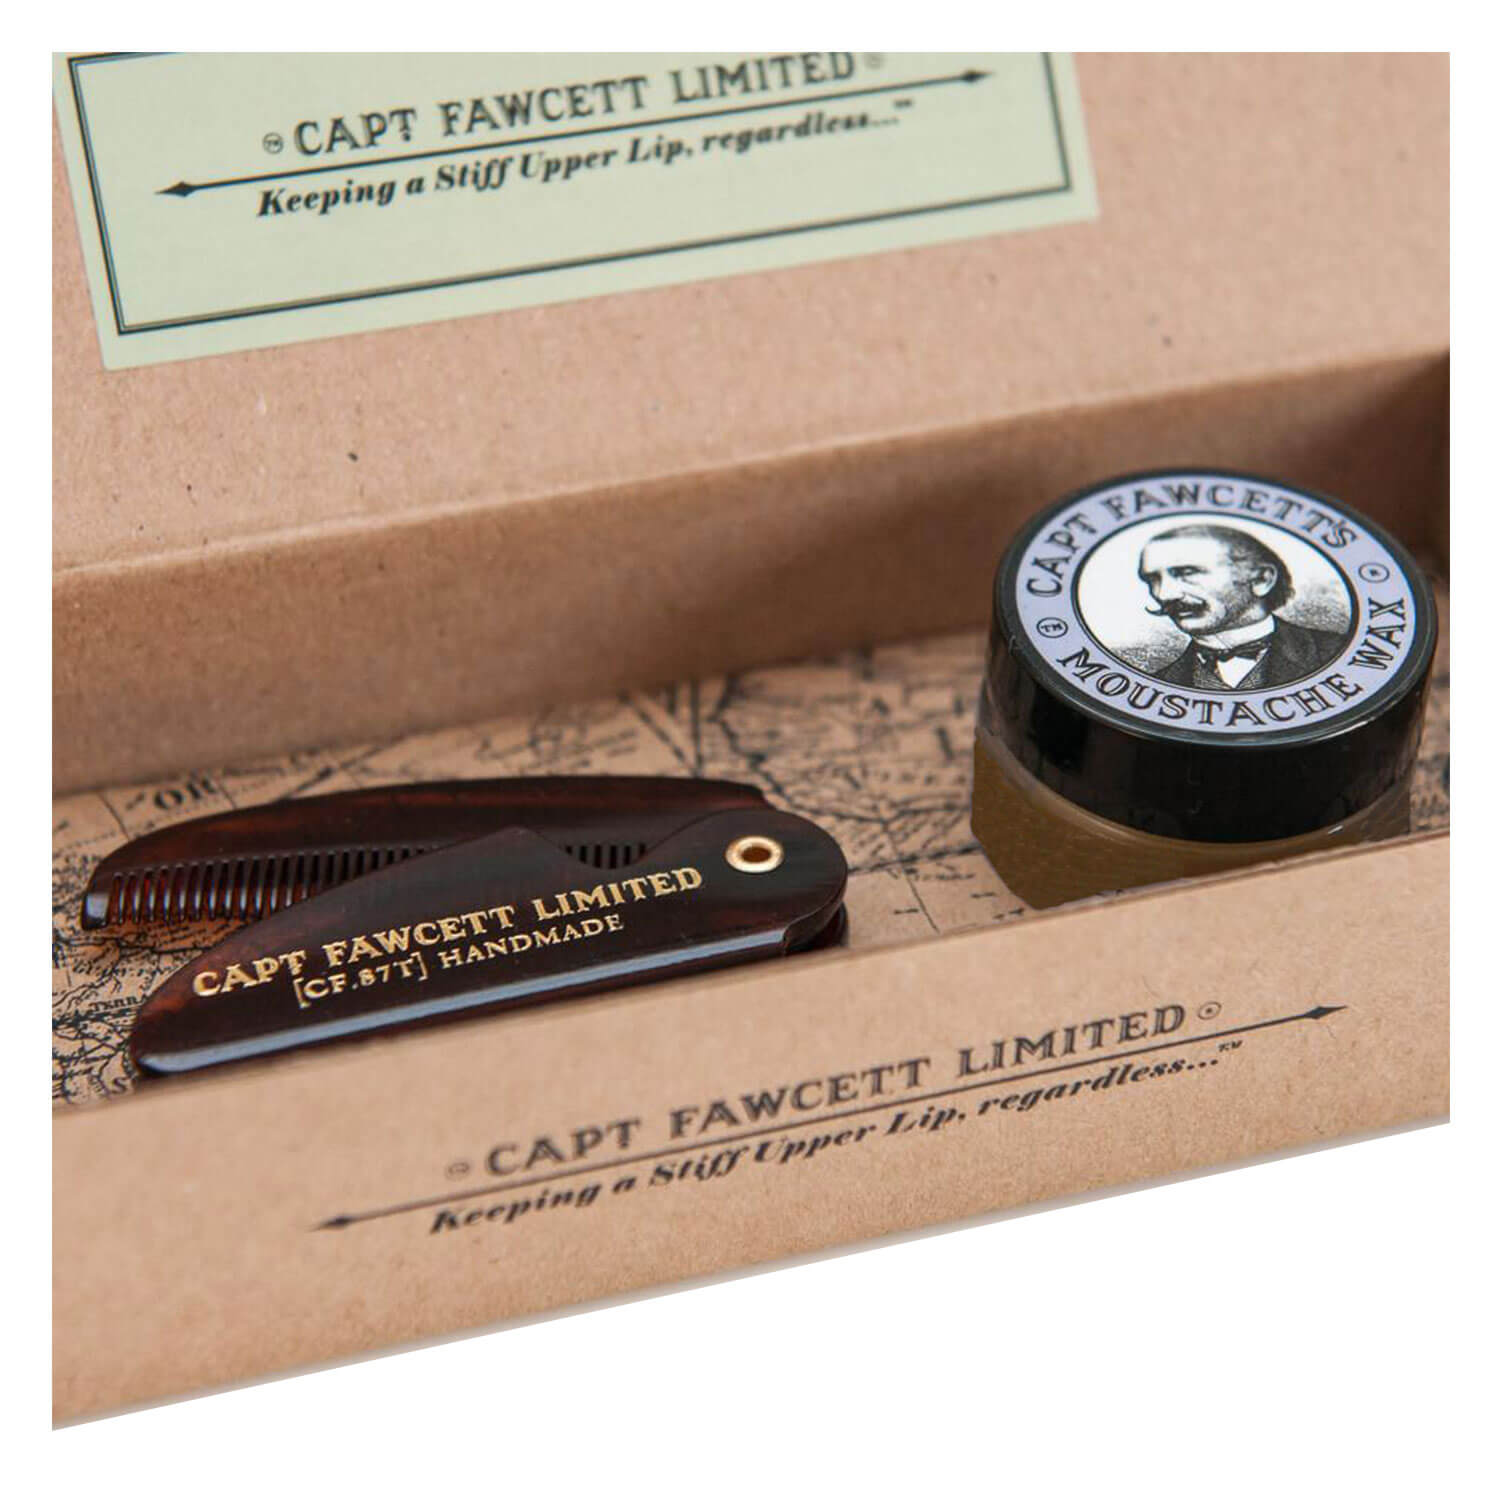 Capt. Fawcett Care - Lavender Moustache Wax & Folding Pocket Moustache Comb Kit